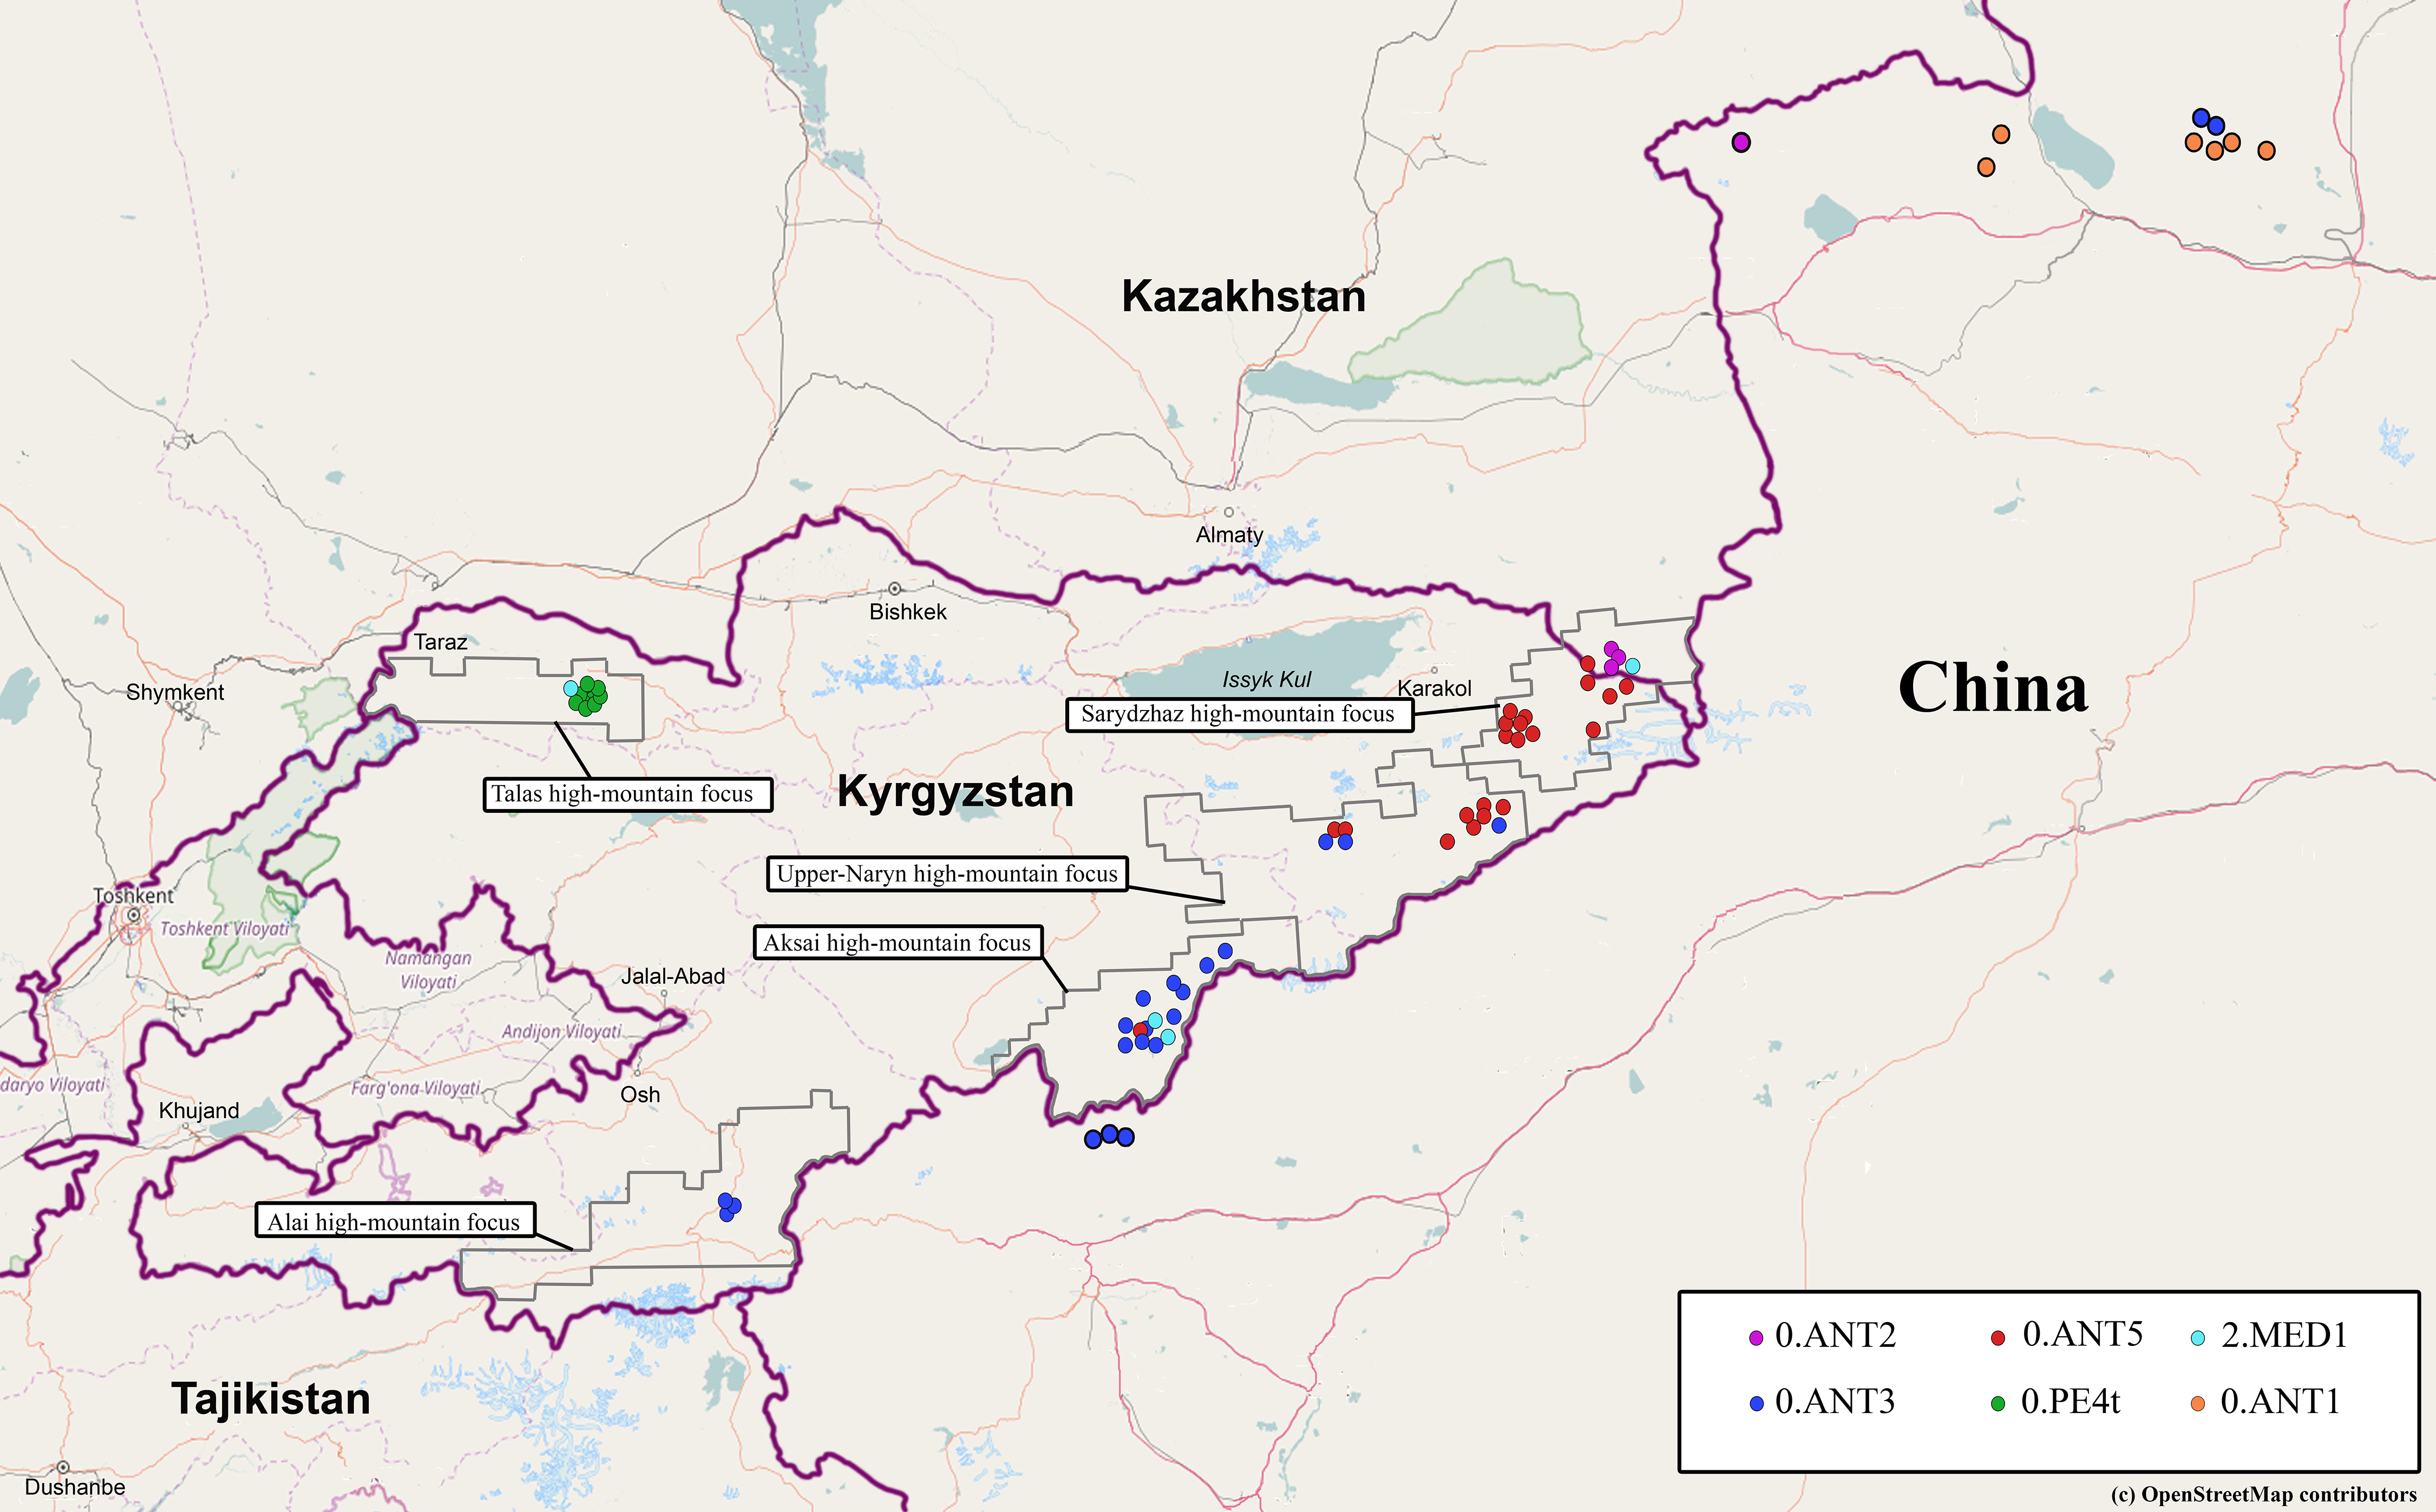 ancient plague strains in kyrgyzstan